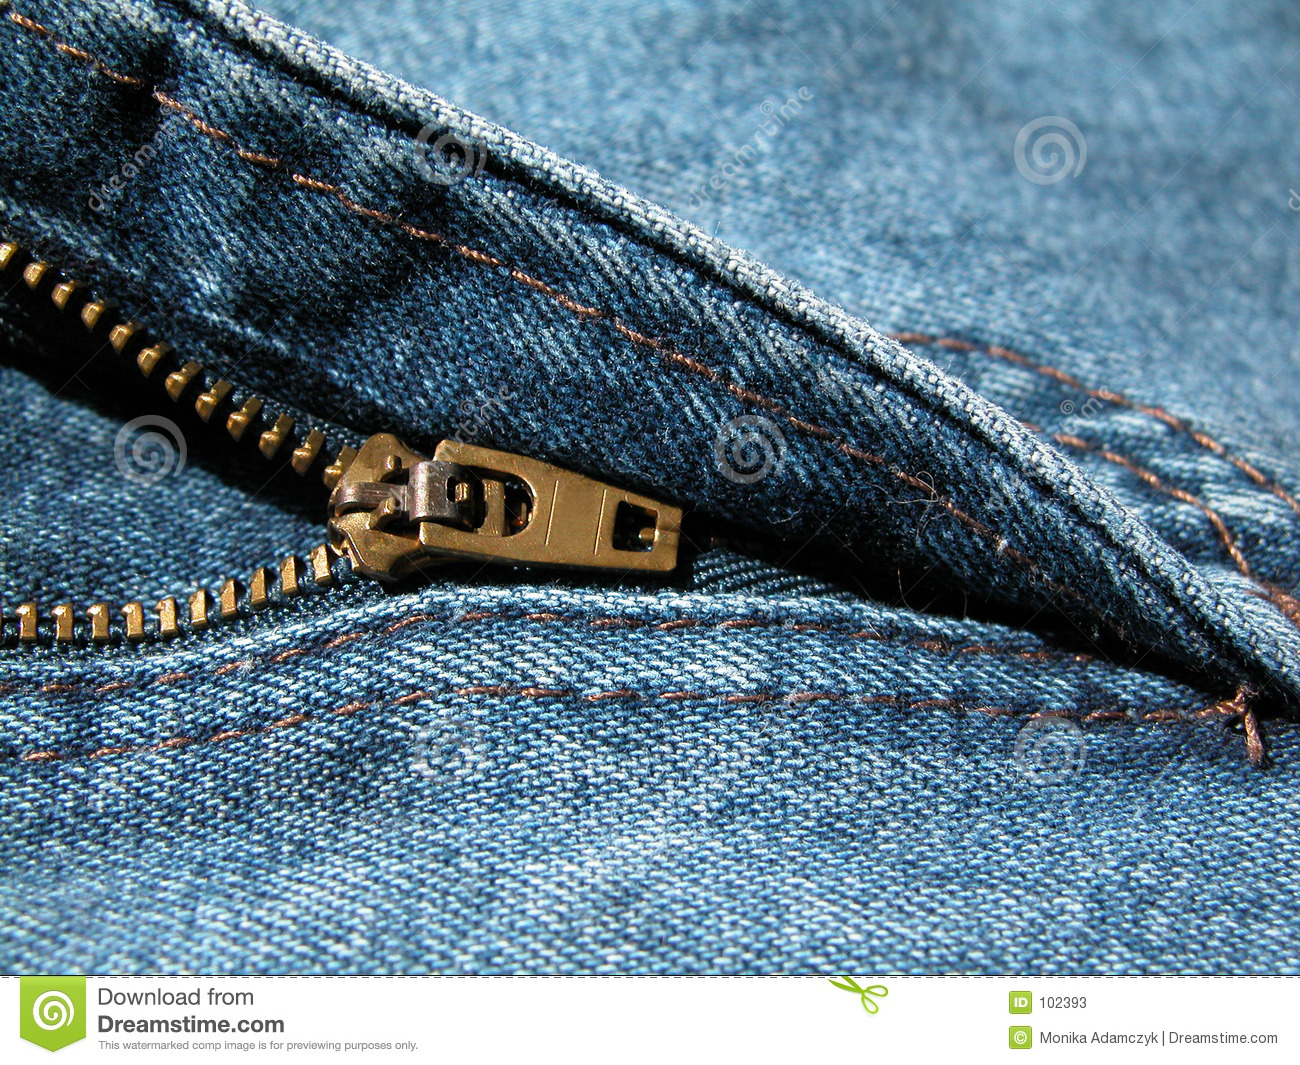 how to fix zipper on shorts